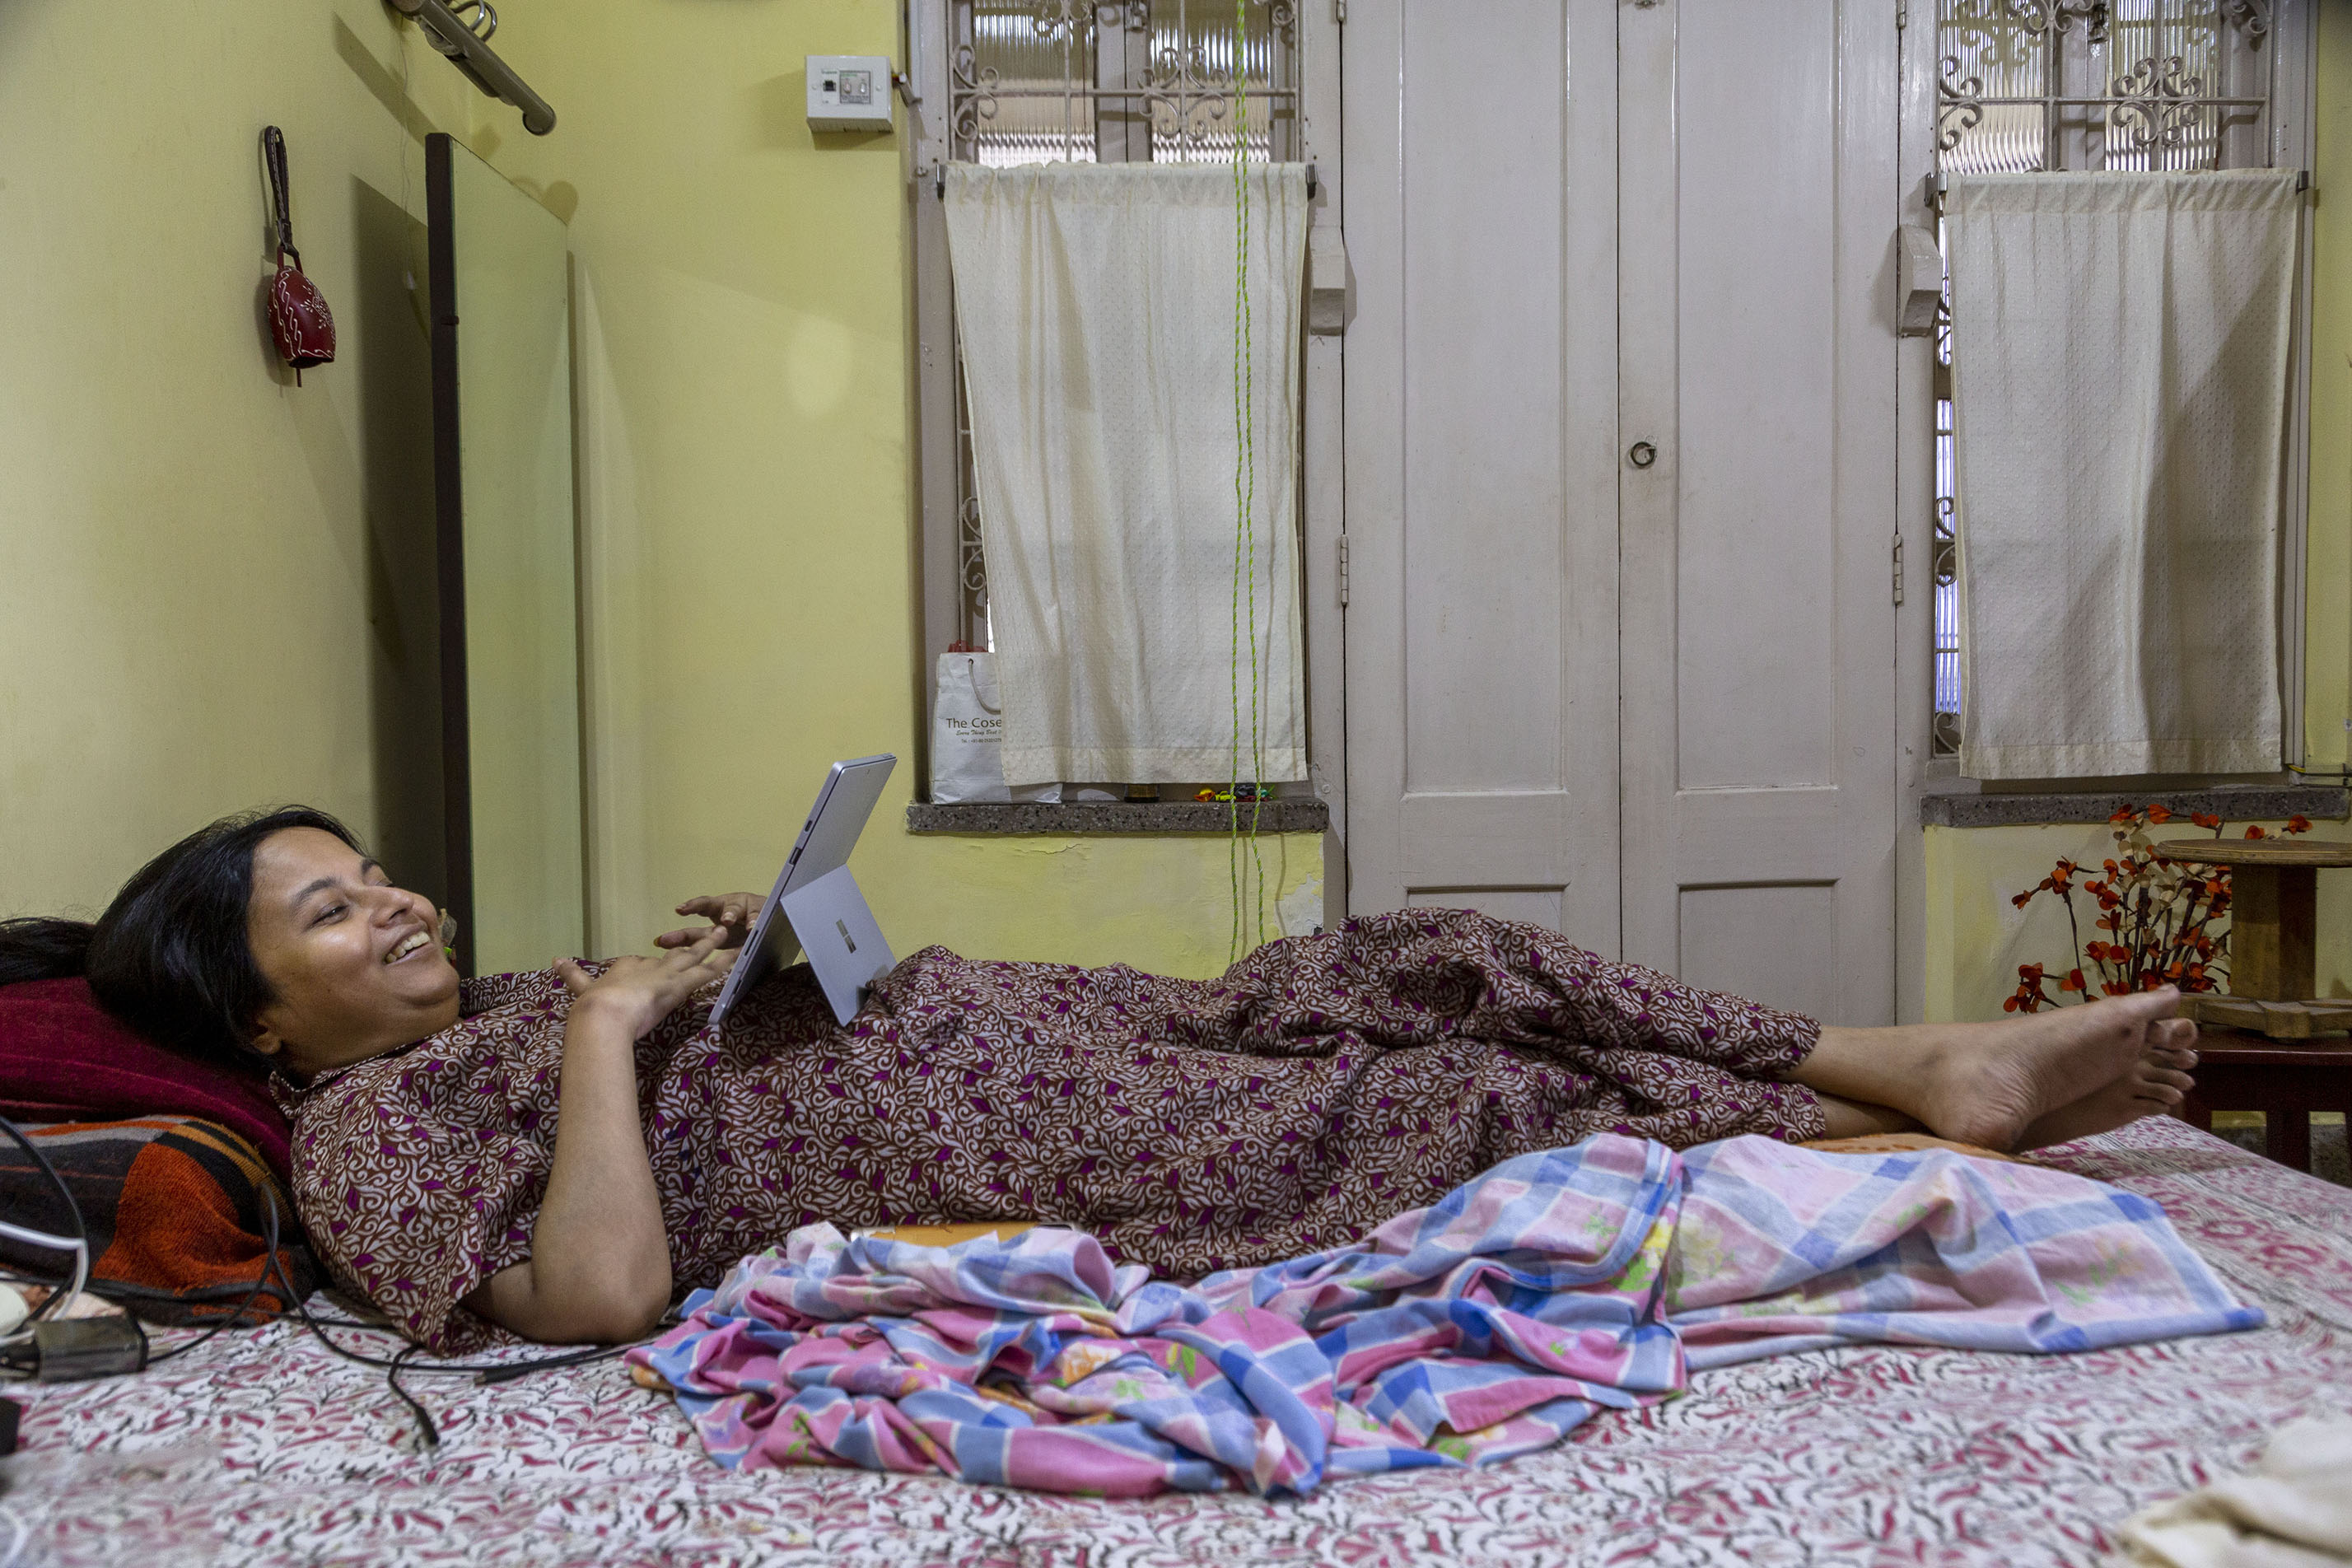 Soumita, wearing a gown in a maroon print, is lying flat on her back on her bed. Her hands rest on her chest and her legs are crossed at the ankles. She is smiling into an open laptop propped up on her stomach. The room has pista green walls. In the background is a door painted white. The door is between two windows with white curtains.